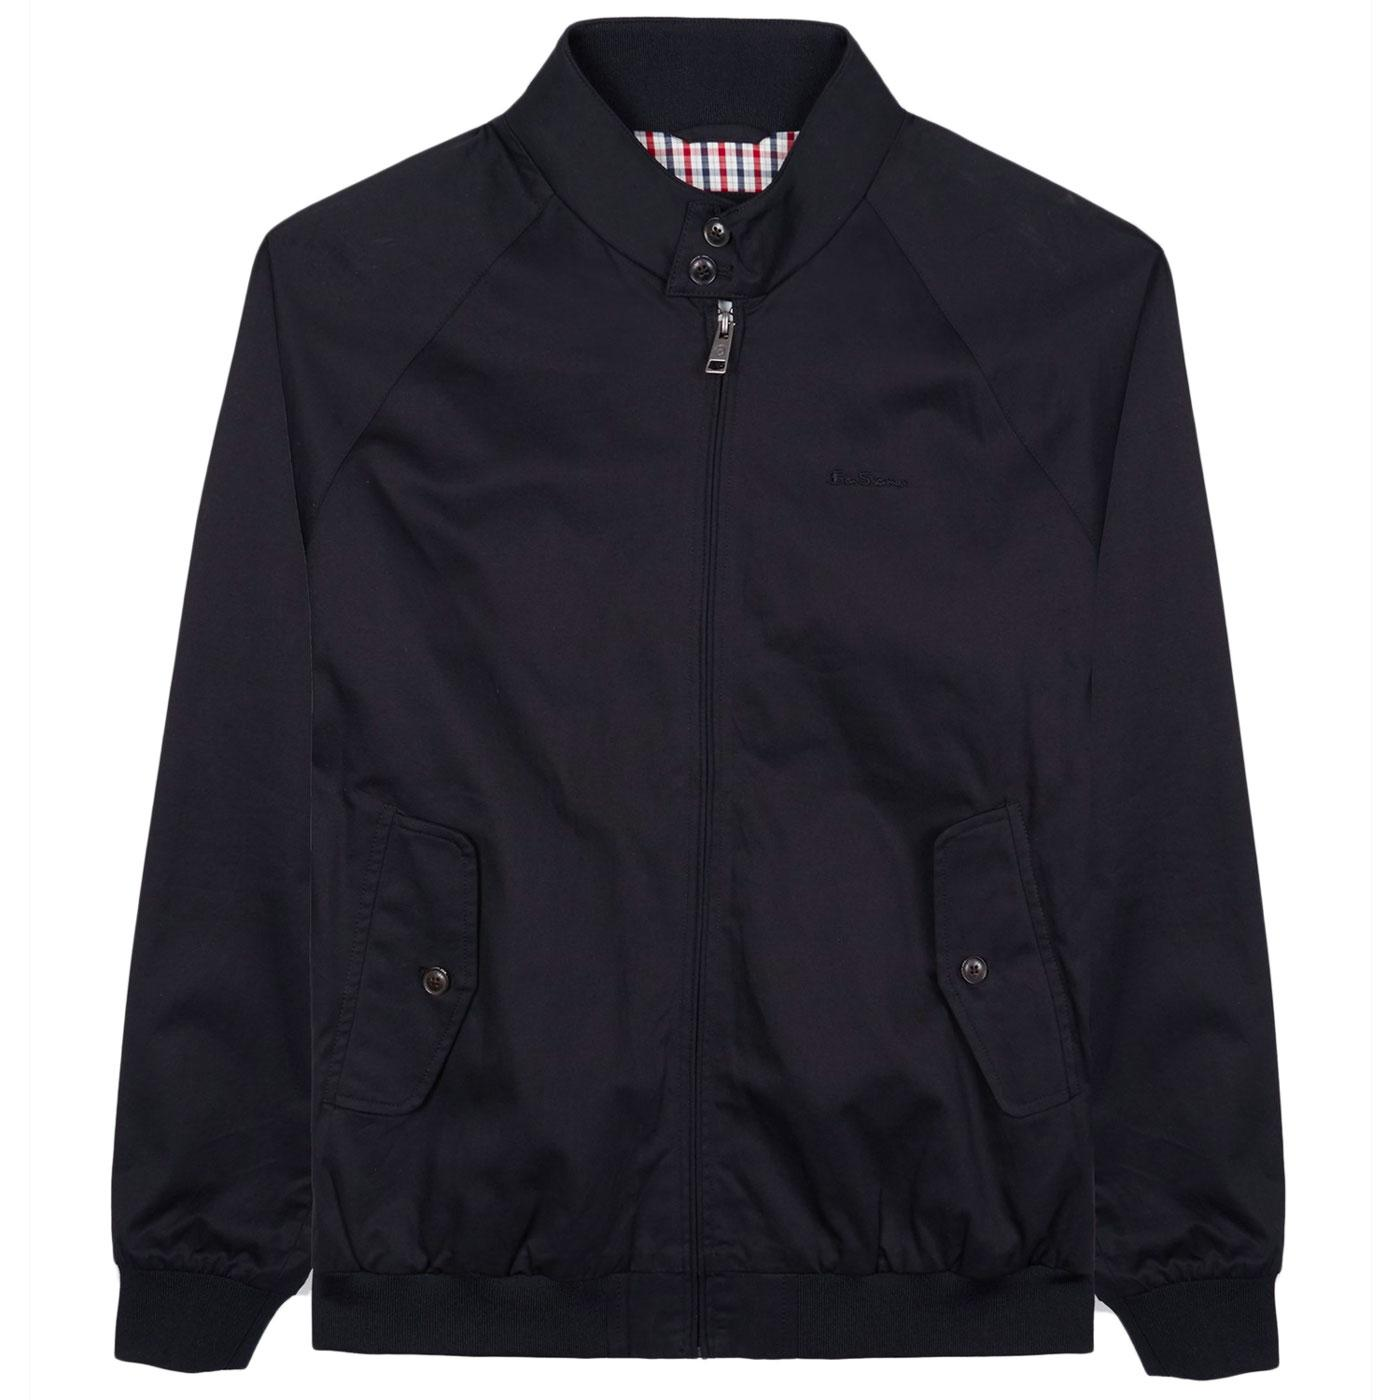 BEN SHERMAN Mod Signature Harrington Jacket (B)